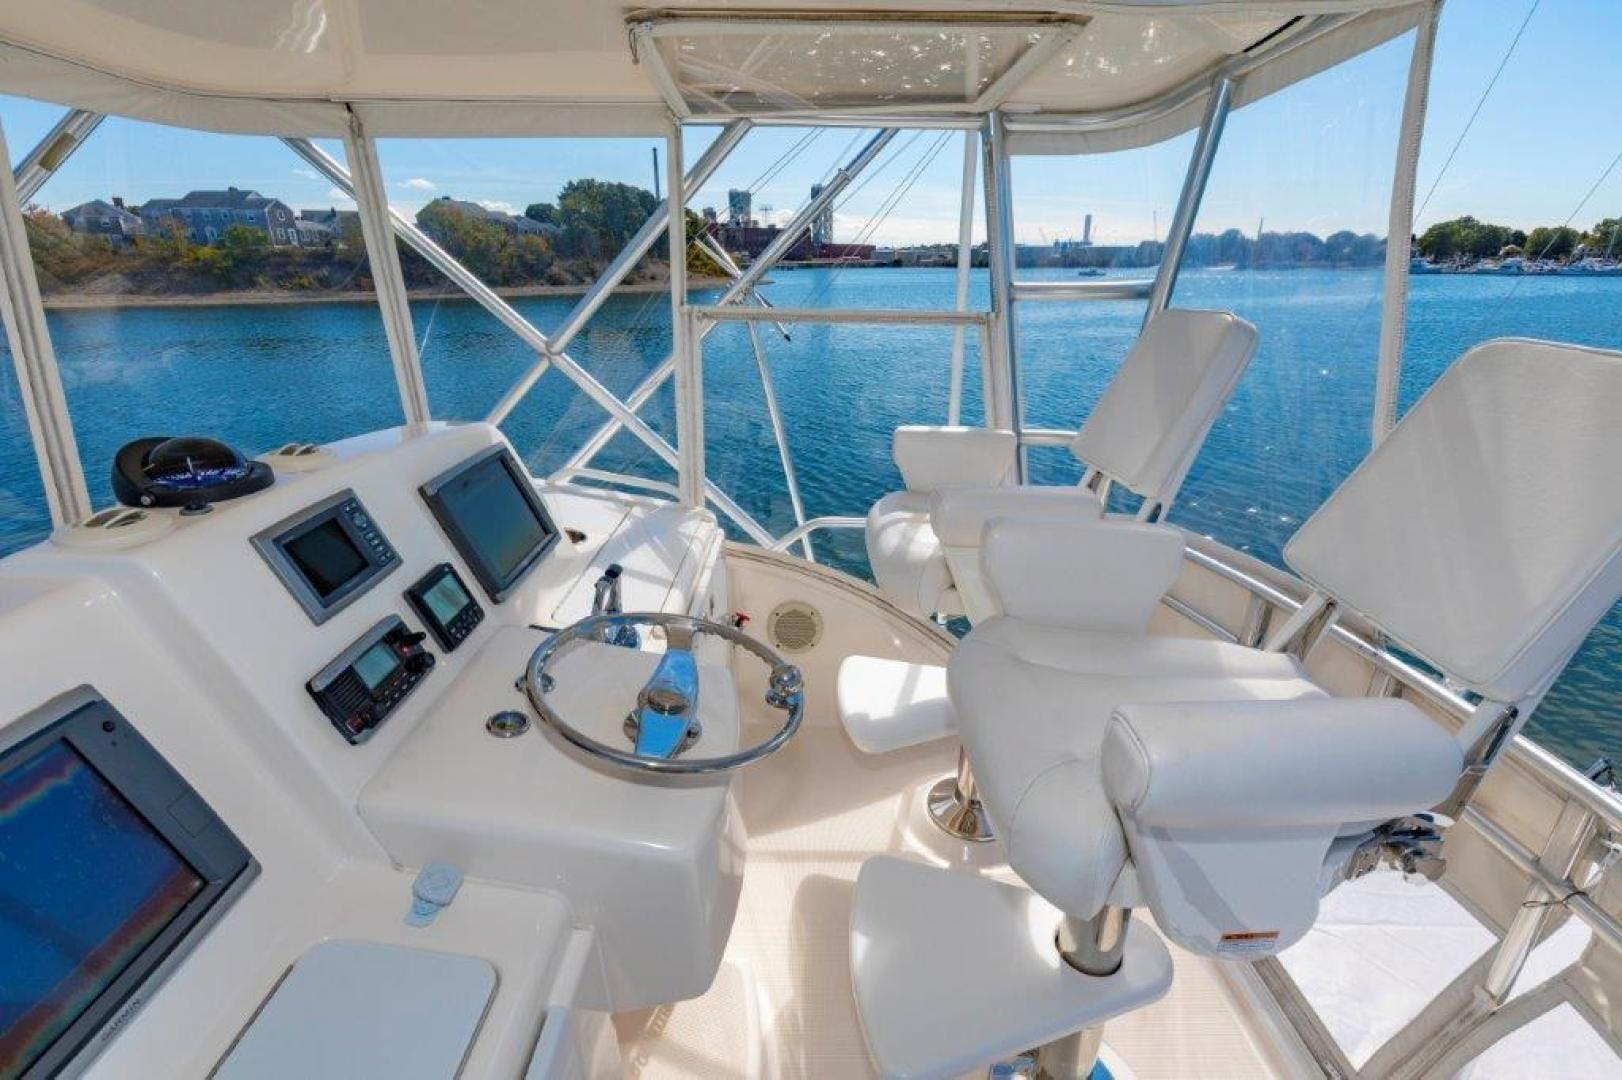 2013 Tiara Yachts 39' Convertible ALLIE CAT | Picture 3 of 50